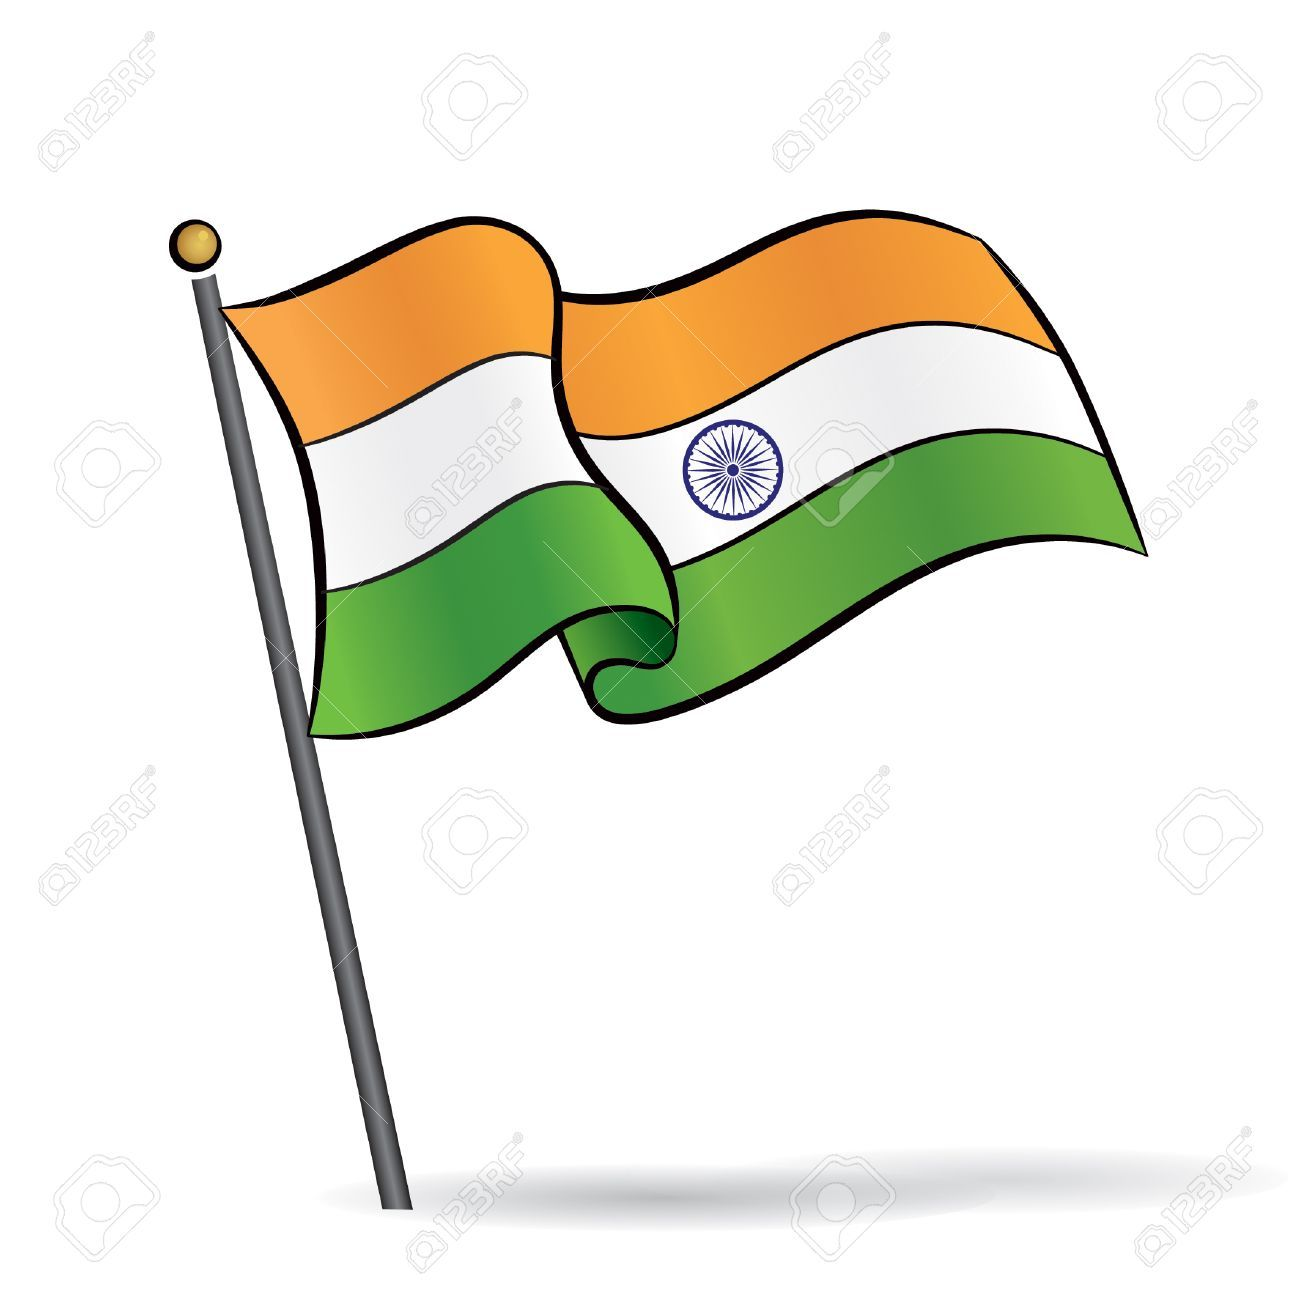 Indian flag images clipart royalty free library Indian flag clipart images 2 » Clipart Portal royalty free library